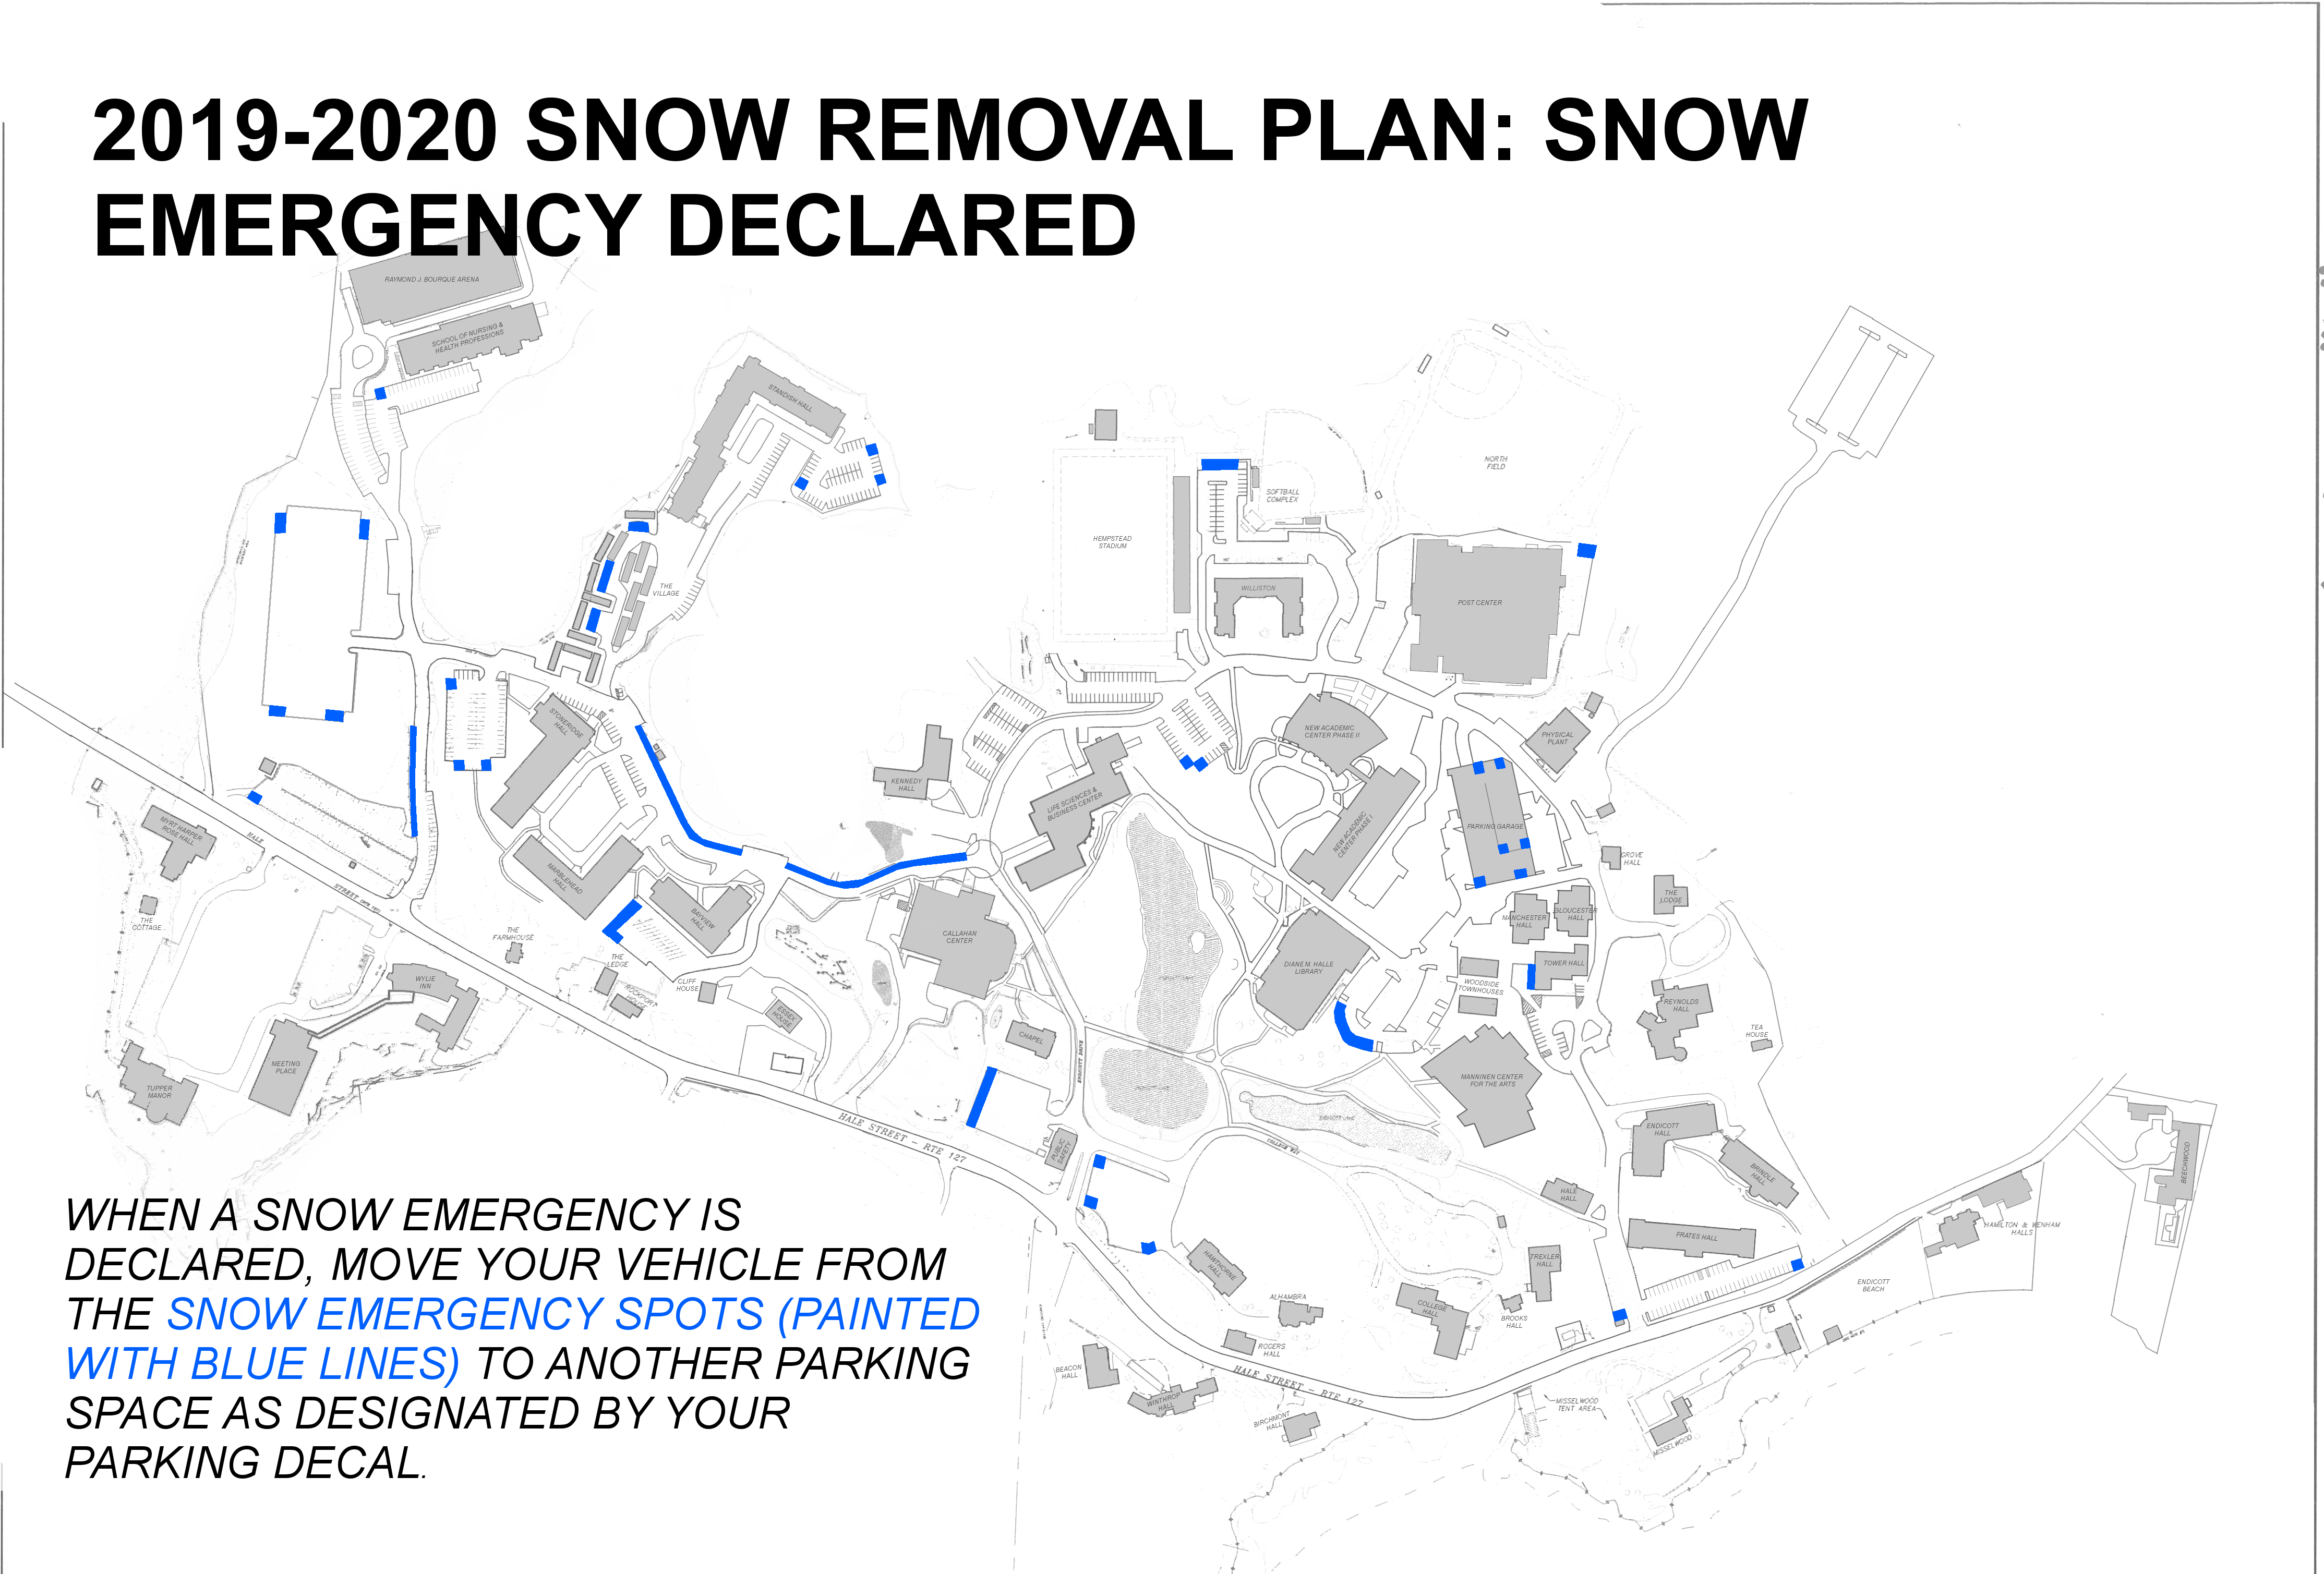 Endicott Snow Removal Plan: Emergency Declared